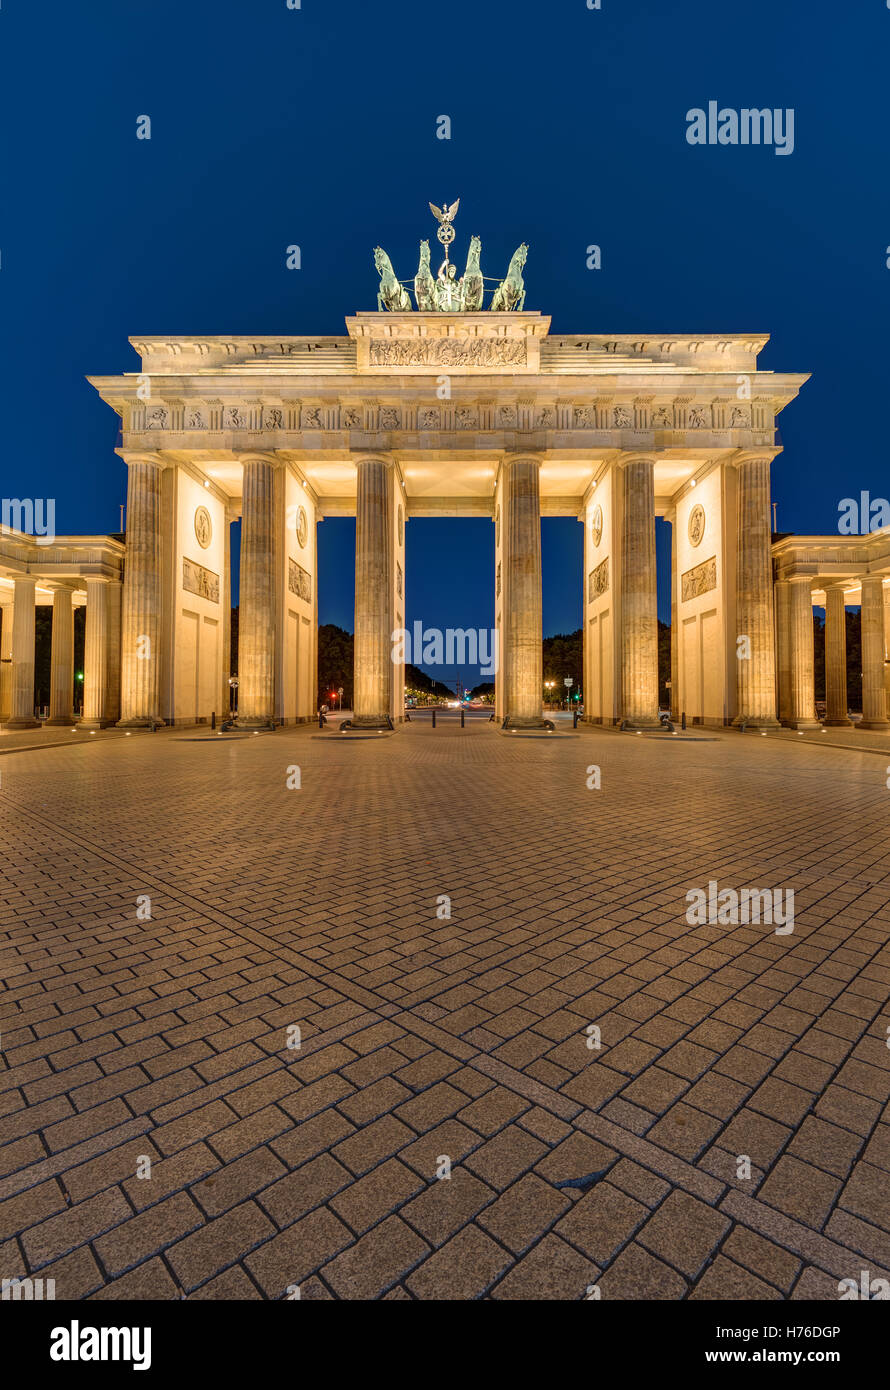 The famous Brandenburger Tor in Berlin at night - Stock Image